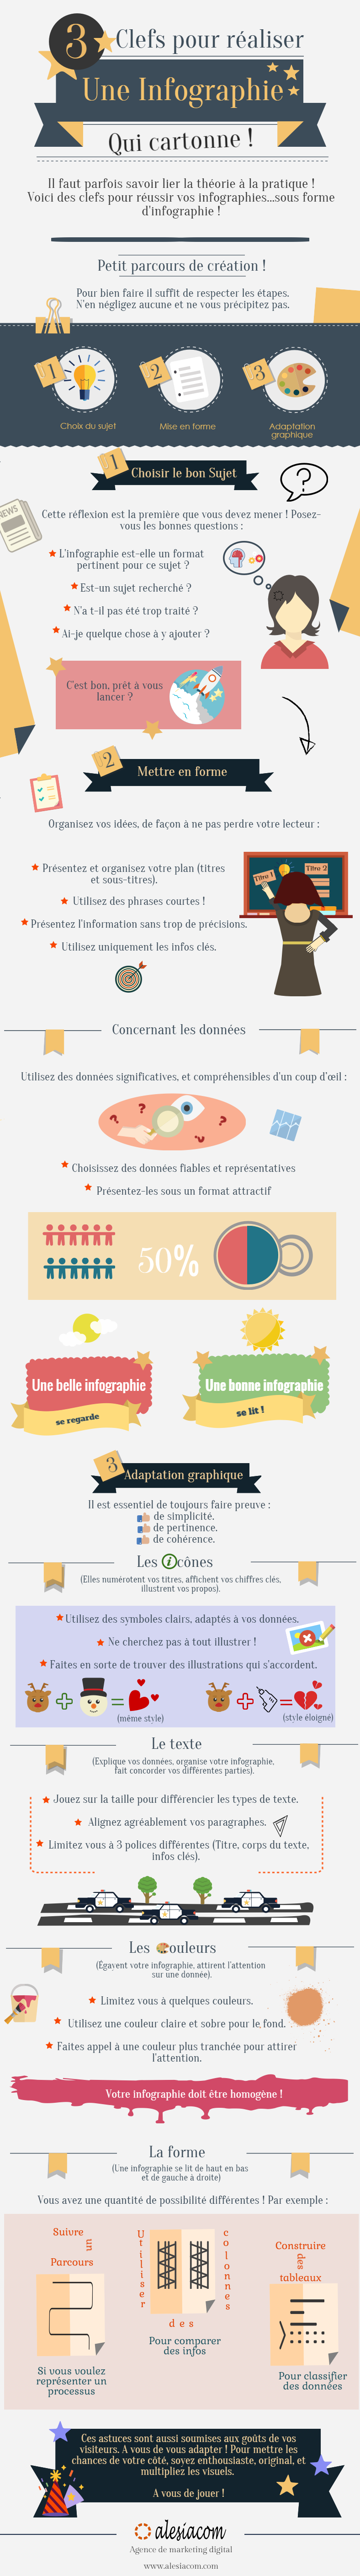 Top infographie